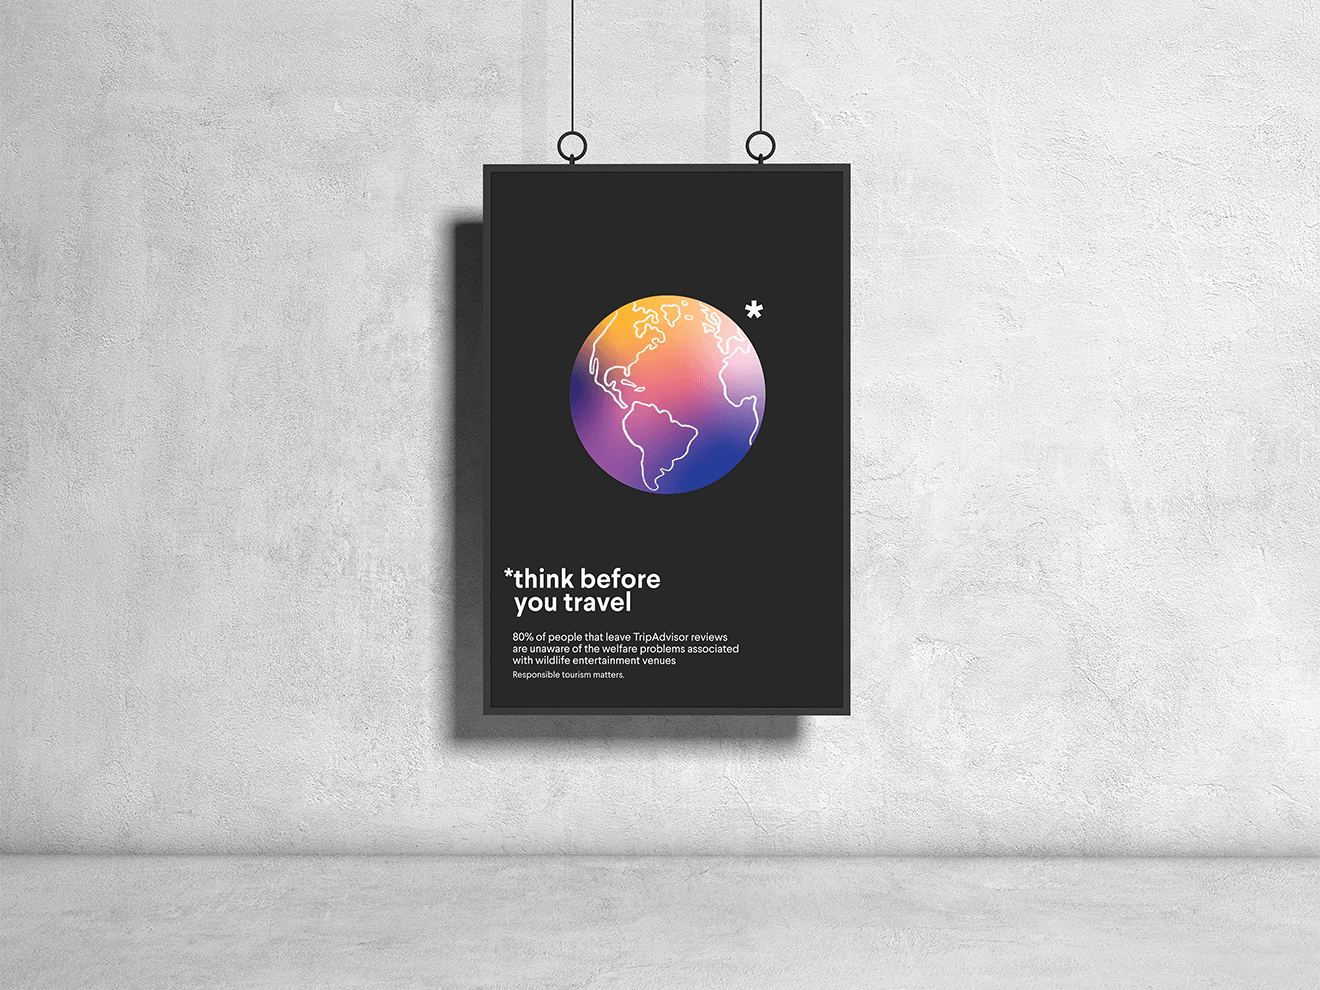 """A poster with an illustration of a globe and an asterisk. The text reads """"*Think before you travel. 80% of people that leave TripAdvisor reviews are unaware of the welfare problems associated with wildlife entertainment venues. Responsible tourism matters."""""""